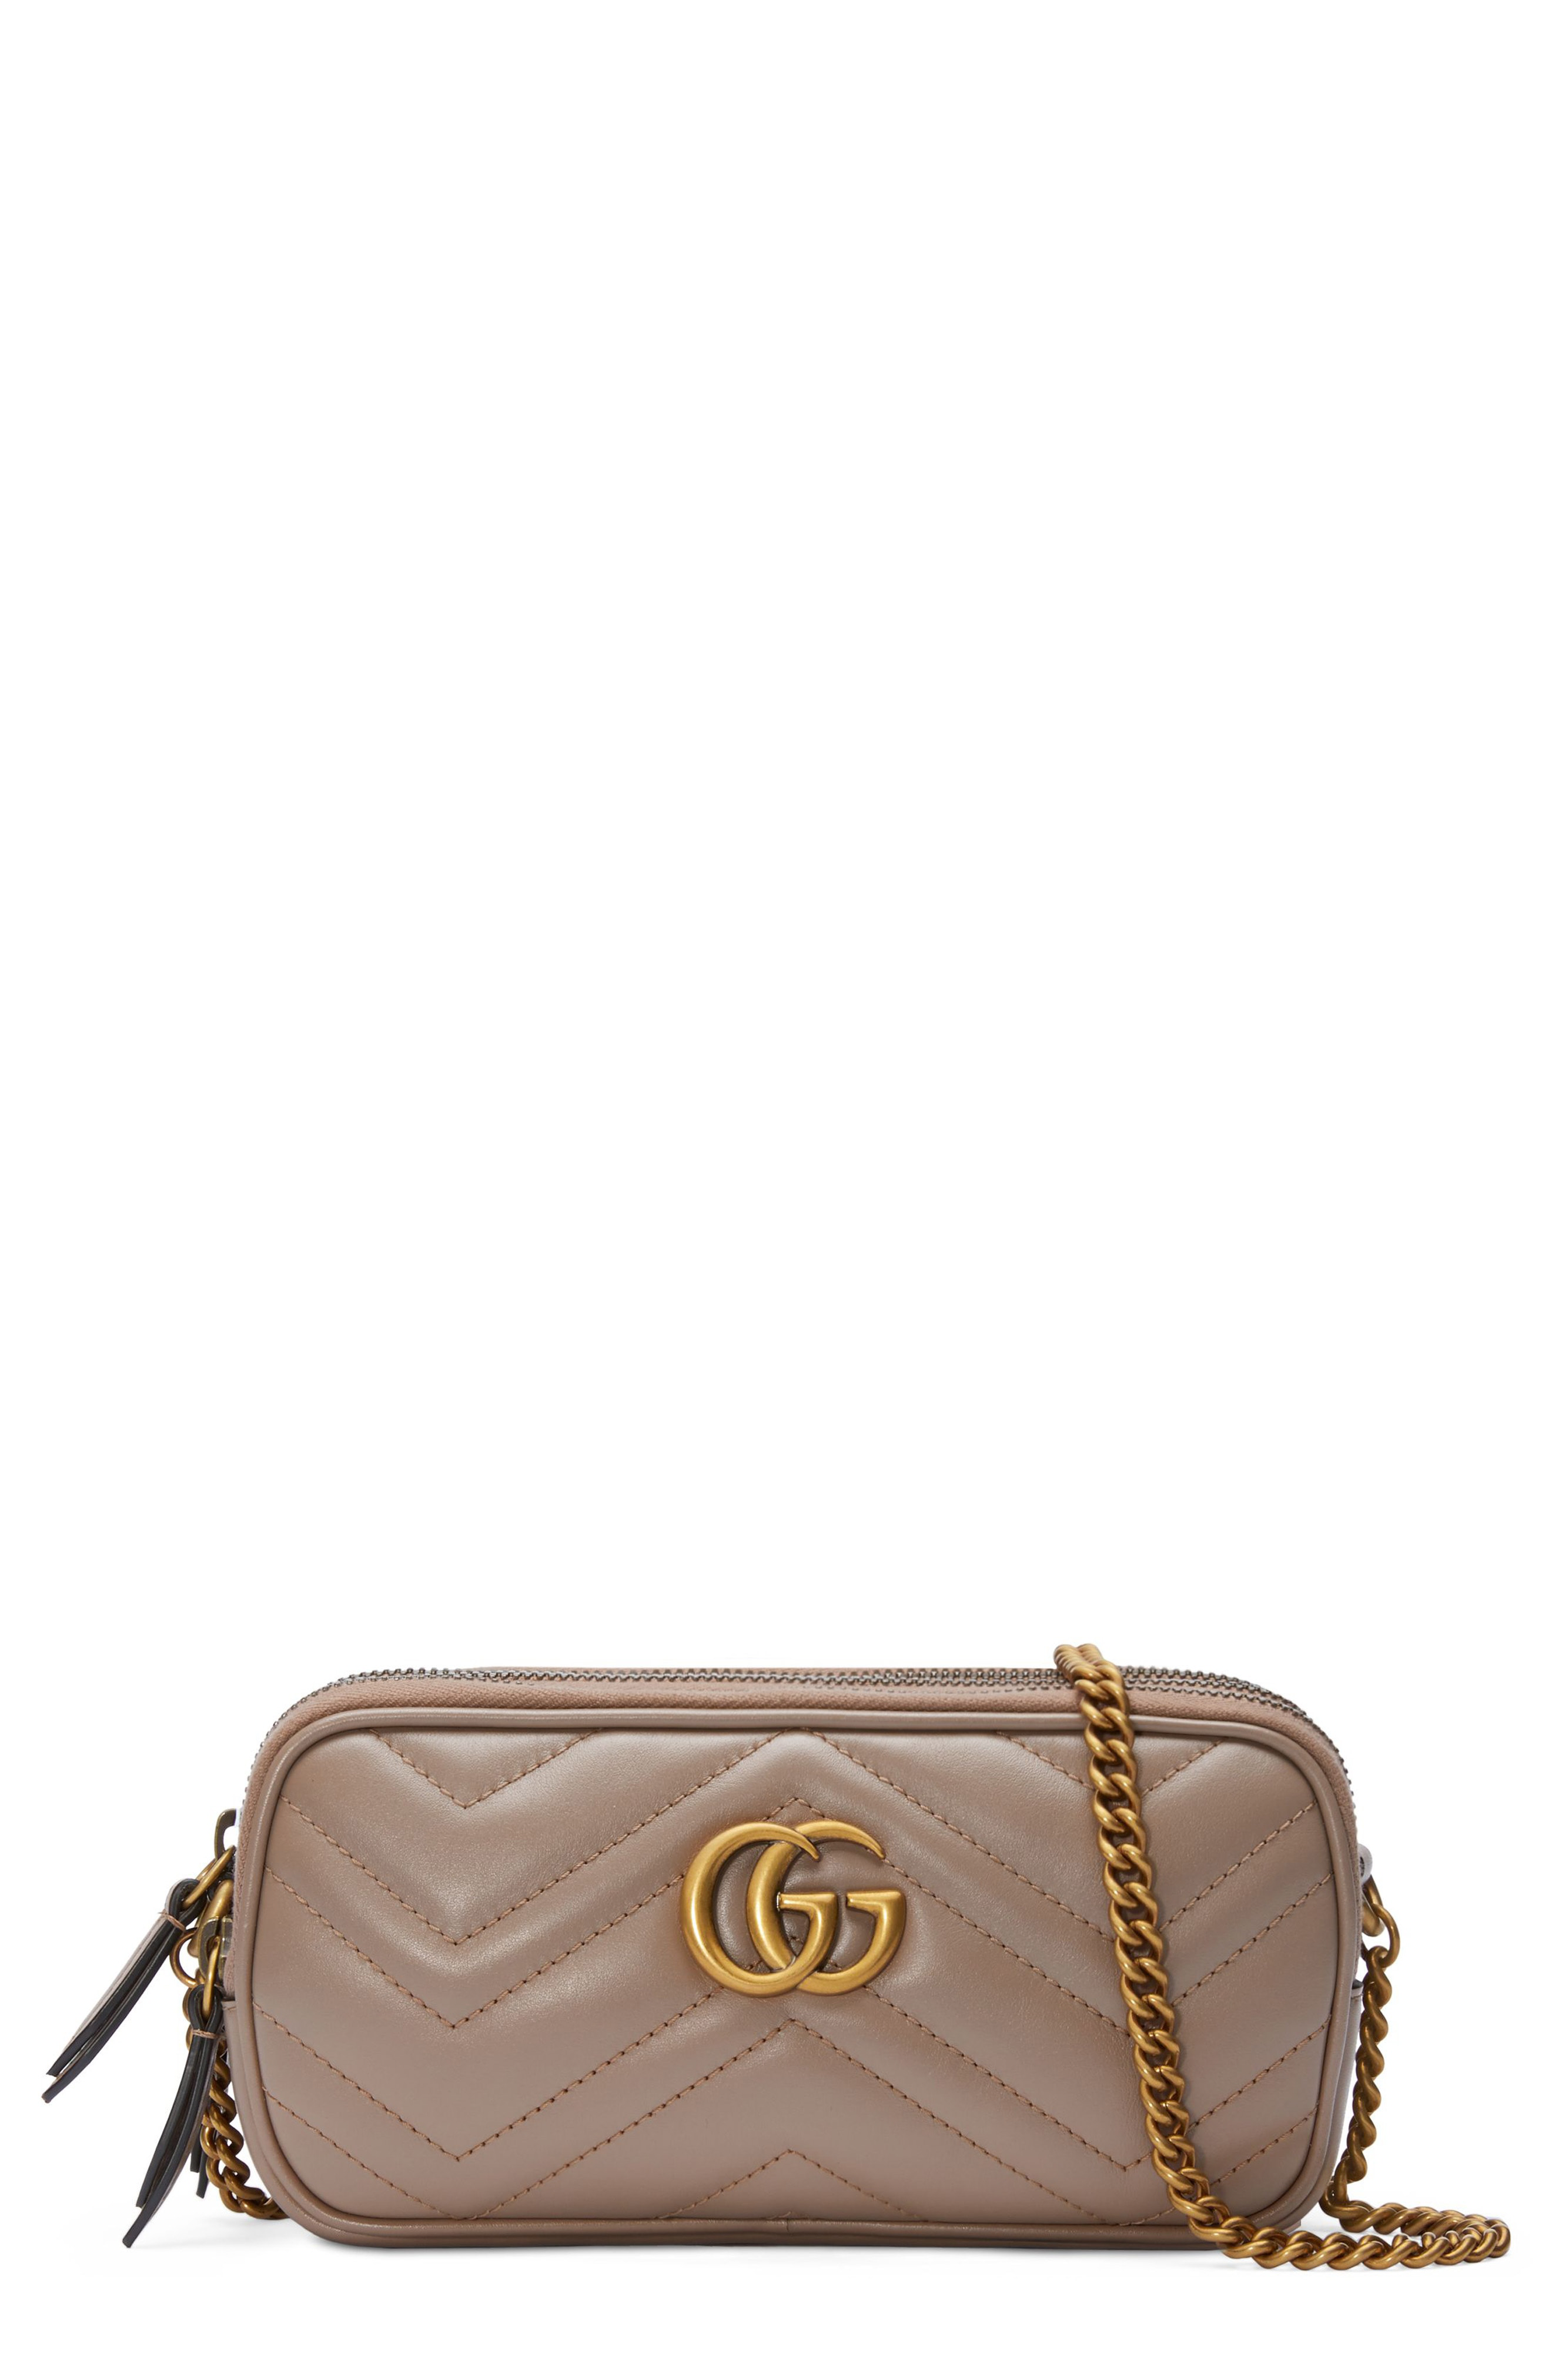 8bb0335d078f Gucci Marmont 2.0 Leather Crossbody Bag - Beige In Porcelain Rose ...